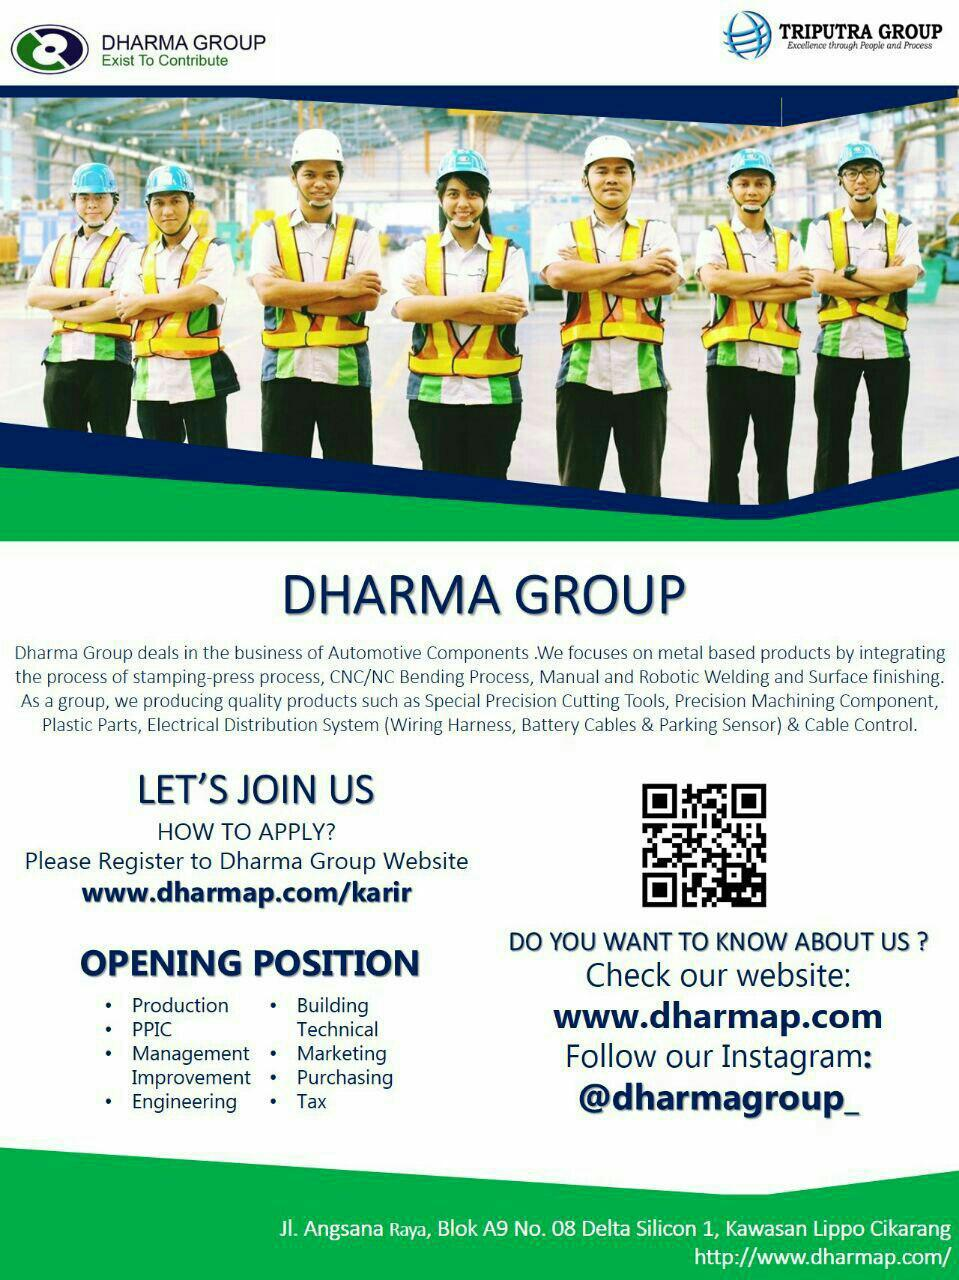 LowKer - Dharma Group - mhakim.web.id